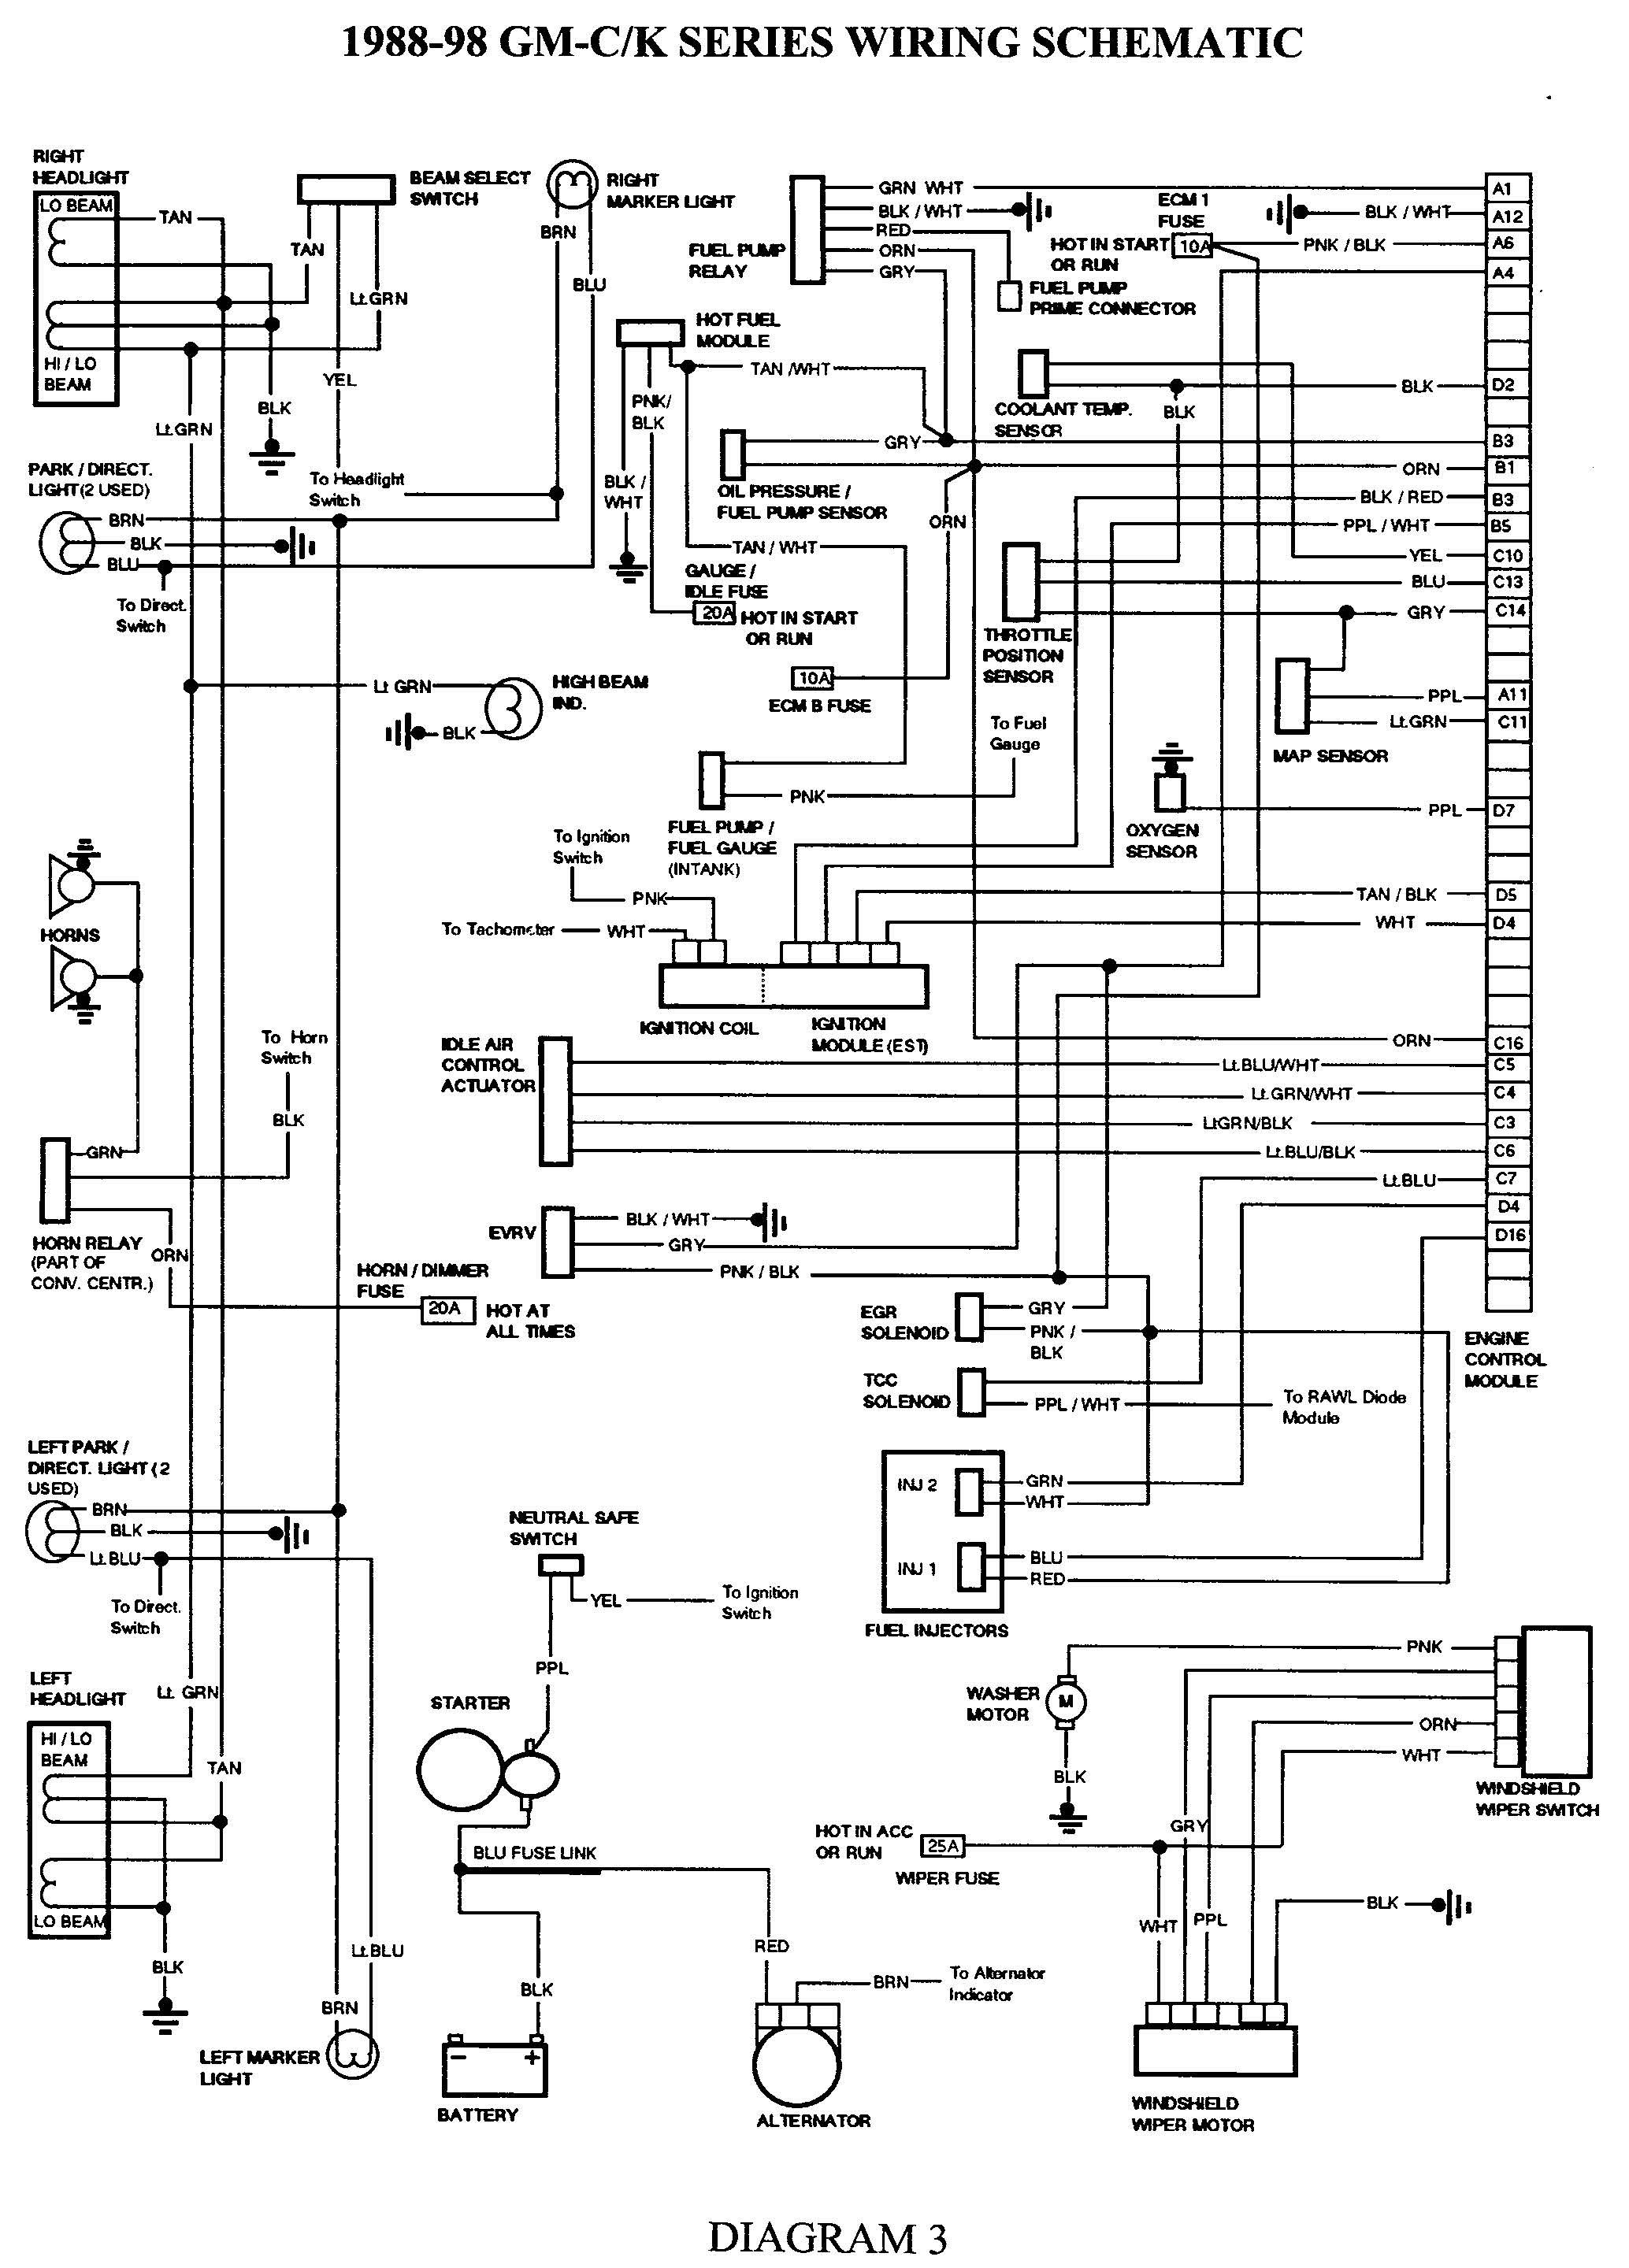 K10 Fuse Box Wiring Library Thatcher Diagram 1986 Chevrolet C10 5 7 V8 Engine C 1500 Rh Pinterest Com